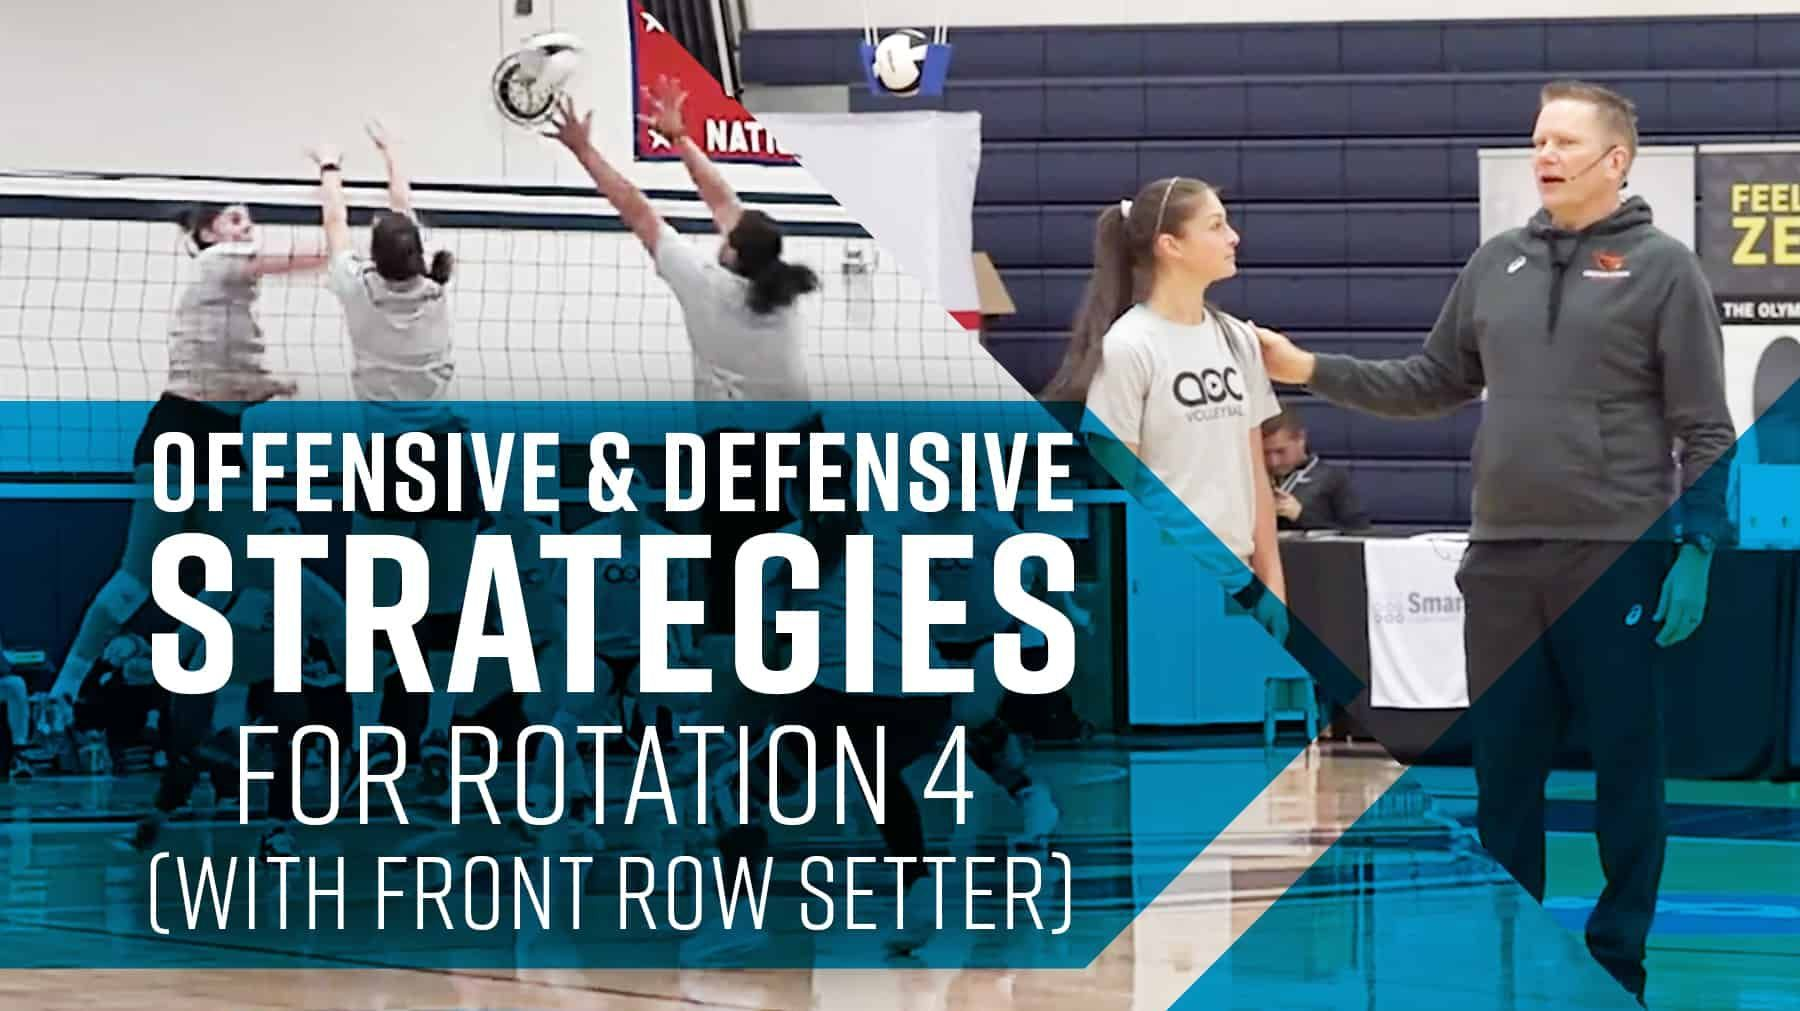 Offensive Defensive Strategies For Rotation 4 With Front Row Setter The Art Of Coaching Volleyball Coaching Volleyball Volleyball Training Volleyball